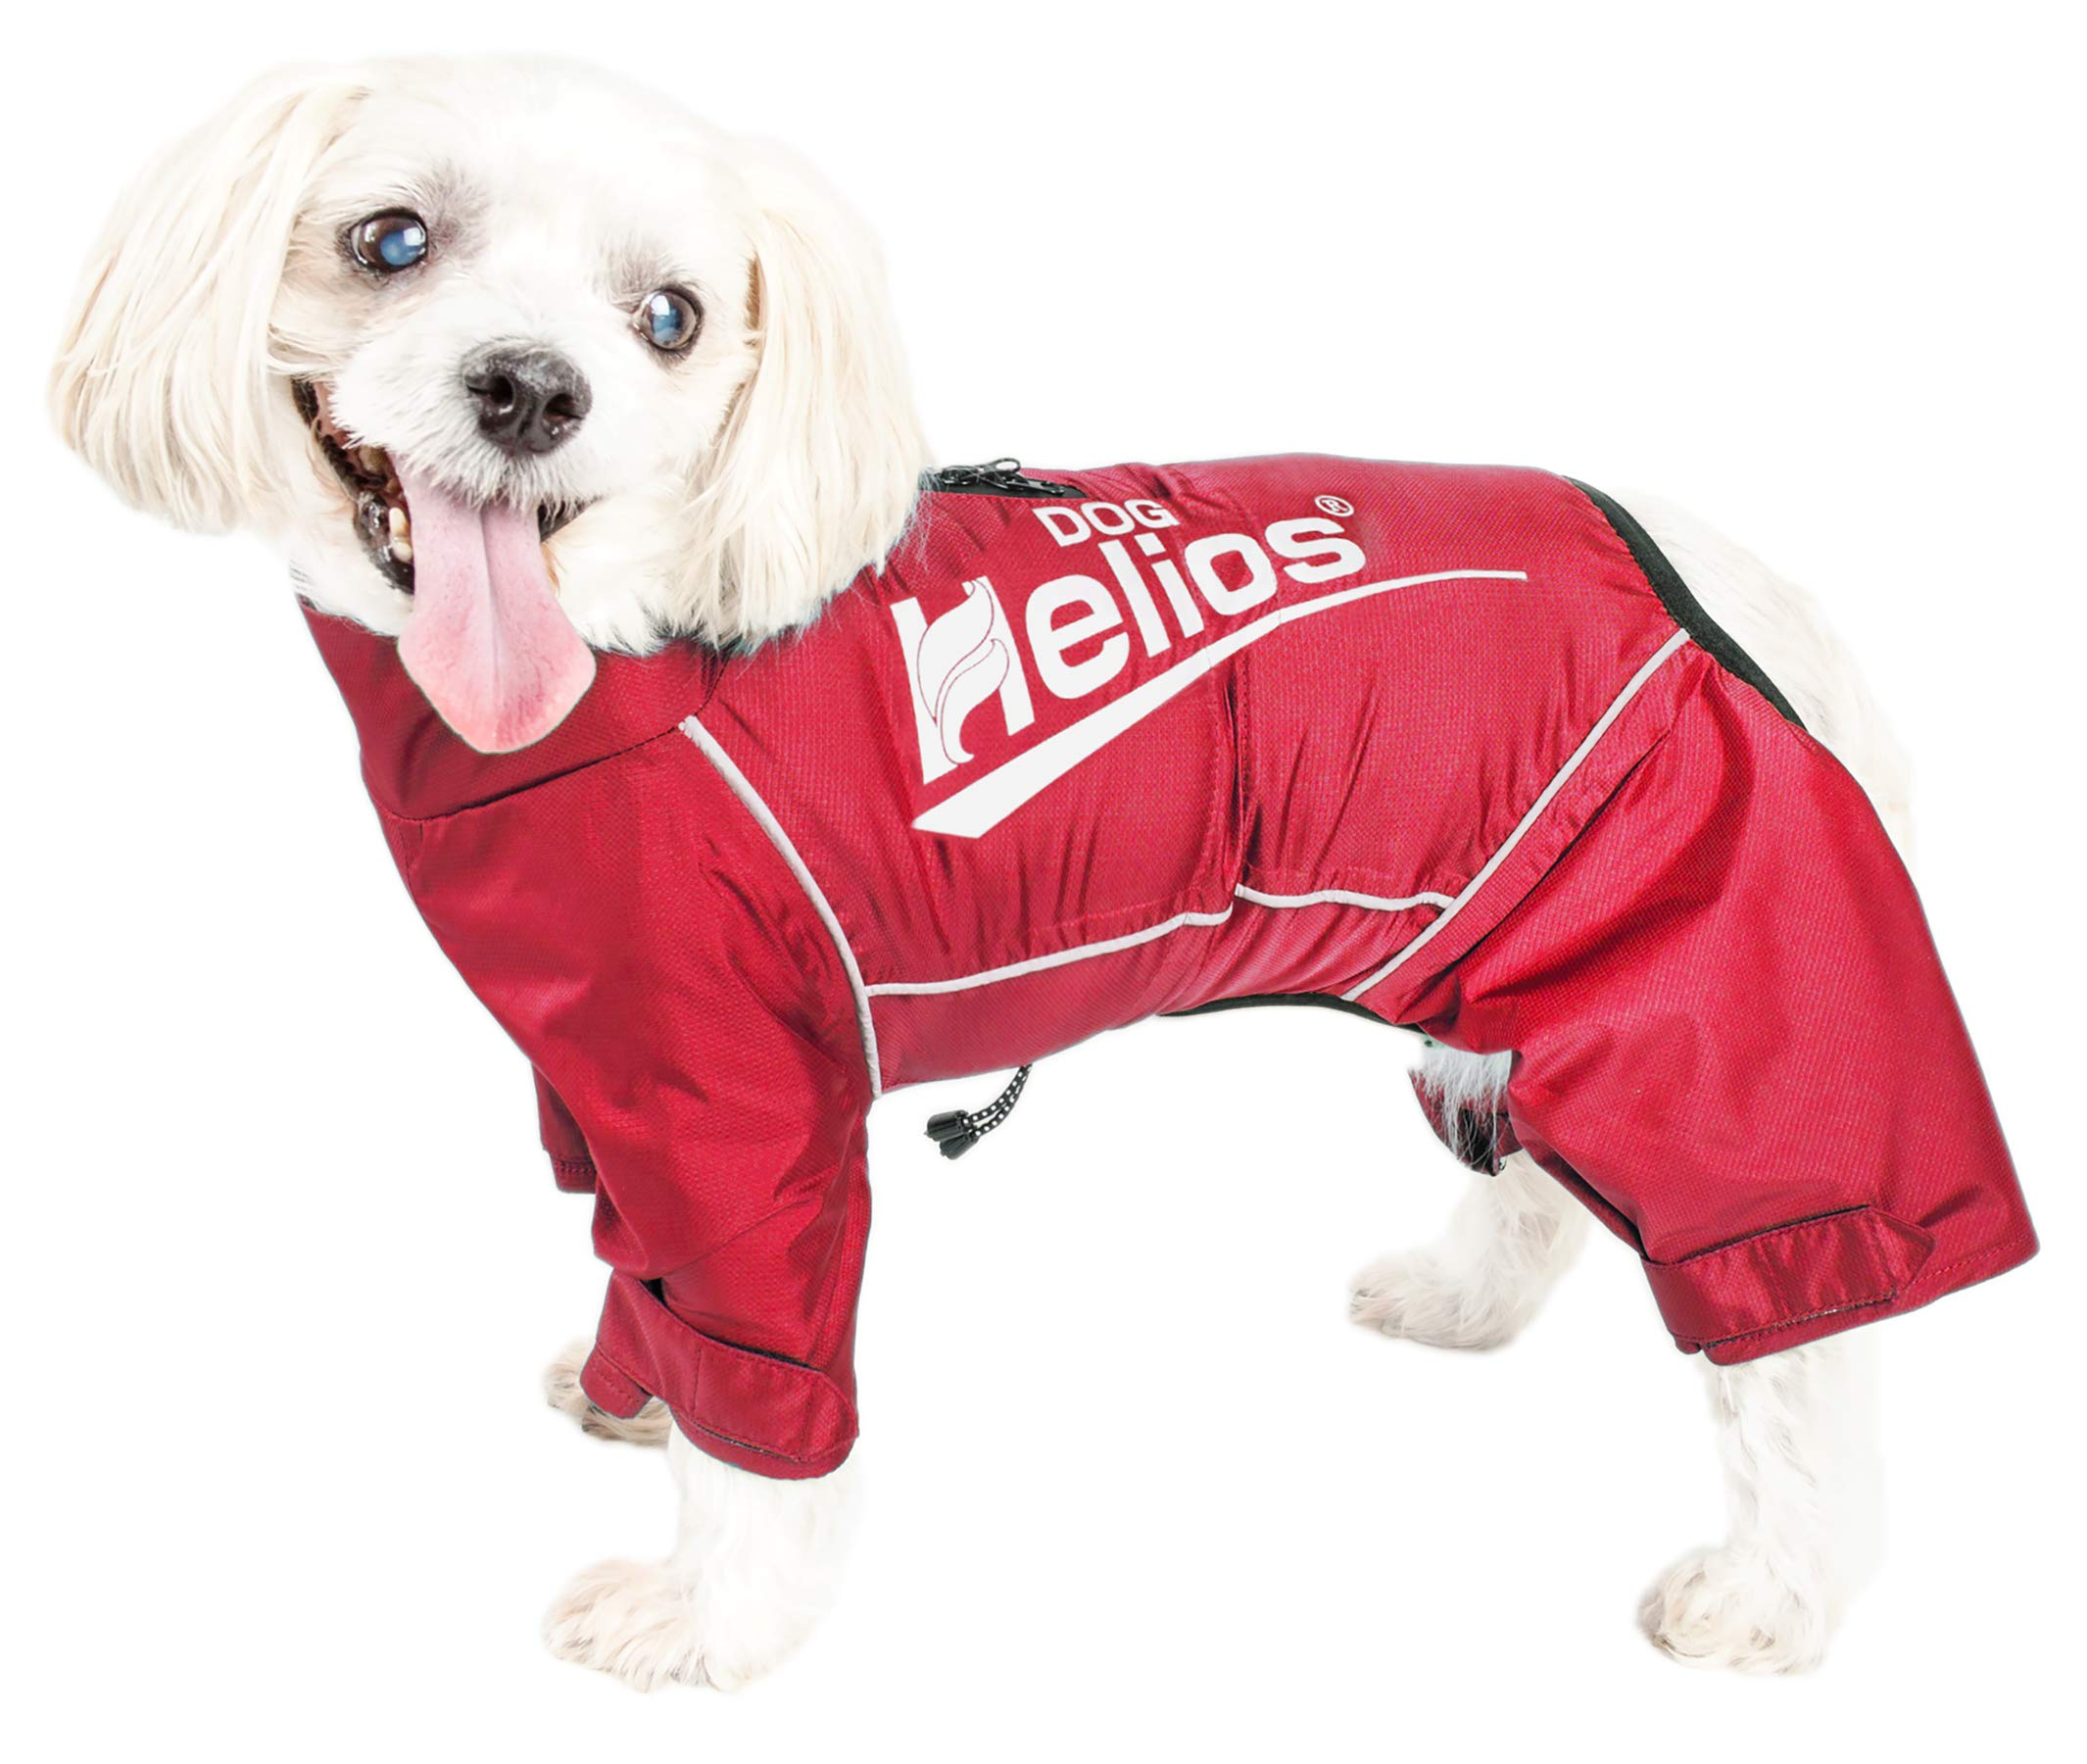 Dog Helios 'Hurricanine' Waterproof and Reflective Full Body Dog Coat Jacket W/Heat Reflective Technology, X-Large, Red by Pet Life